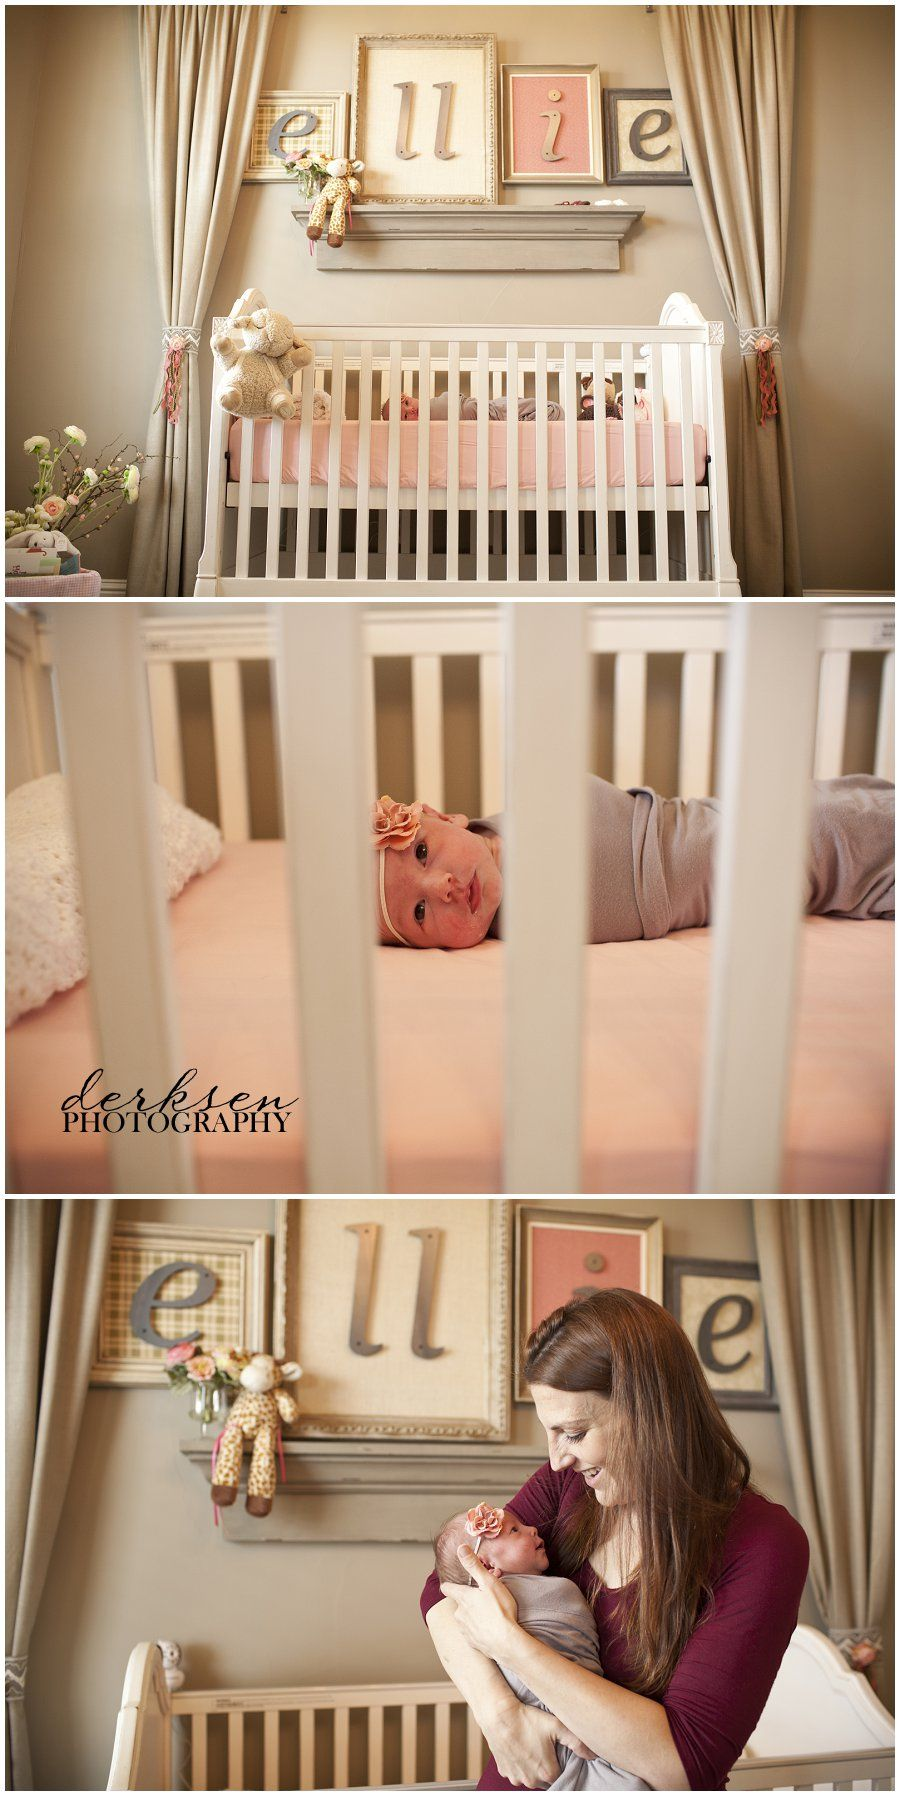 Love the letters to spell her name and the curtains that frame the crib from derkensphotographyblog.com